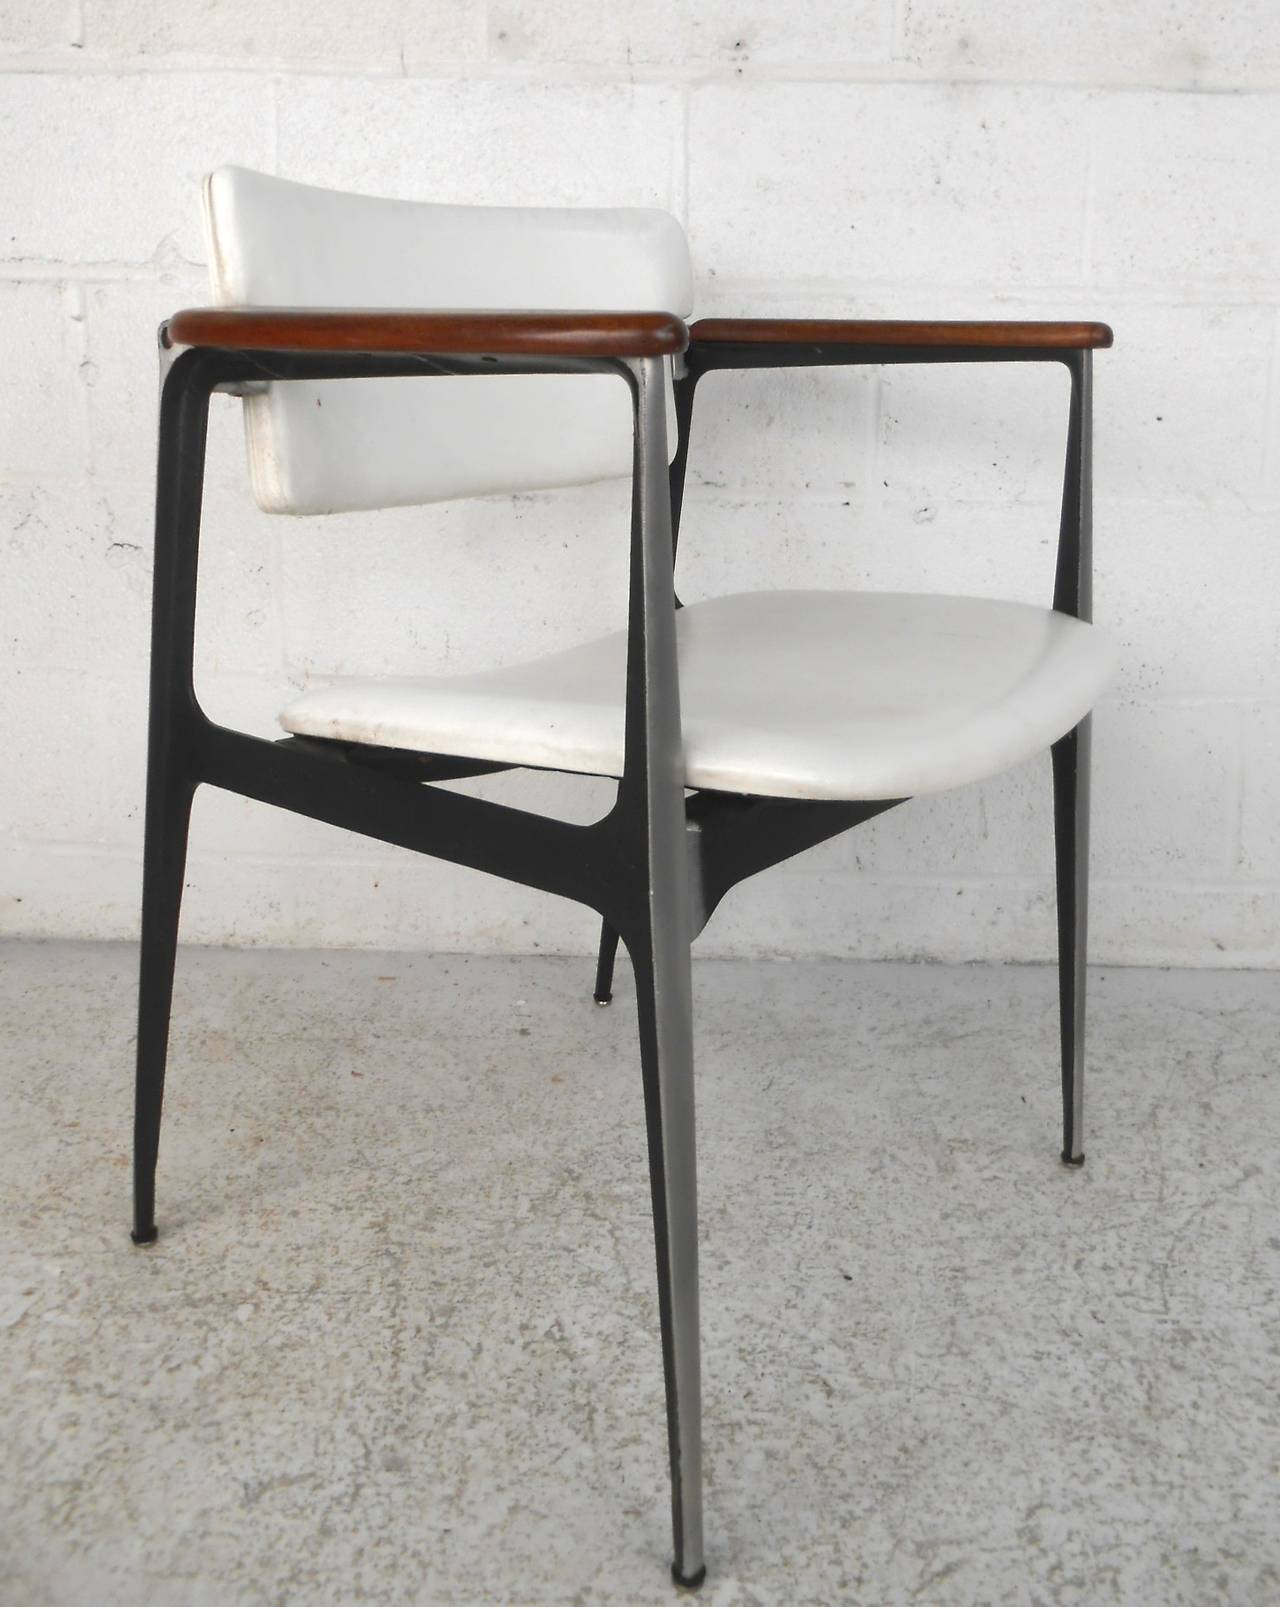 Exceptionnel Mid Century Modern Shelby Williams U0027Gazelleu0027 Chair By Crucible Products ...